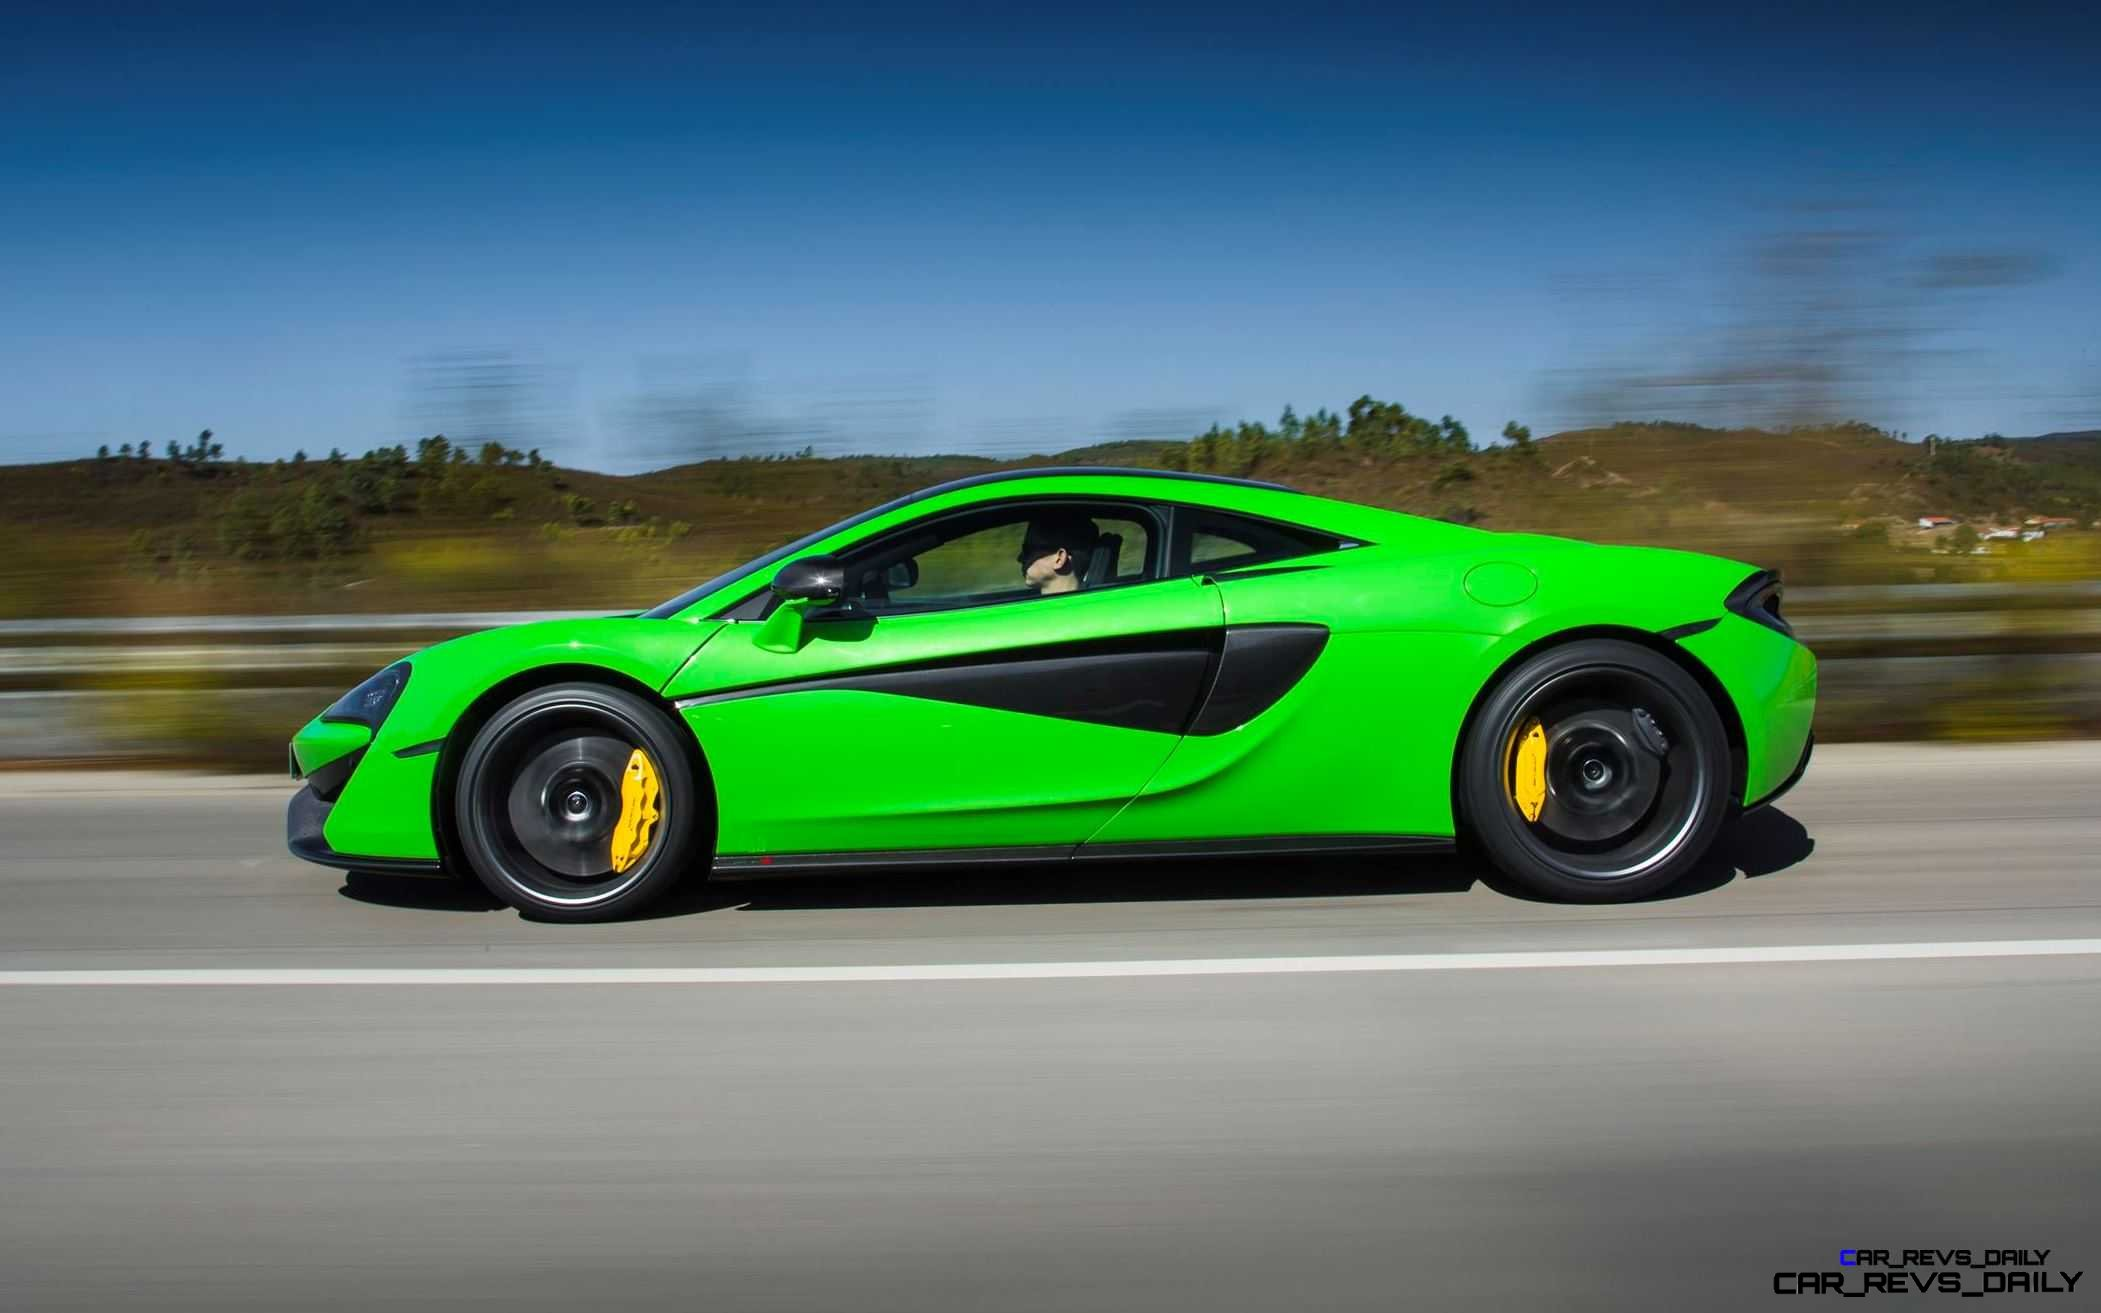 5857McLaren-570S-Coupe---Mantis-Green-008